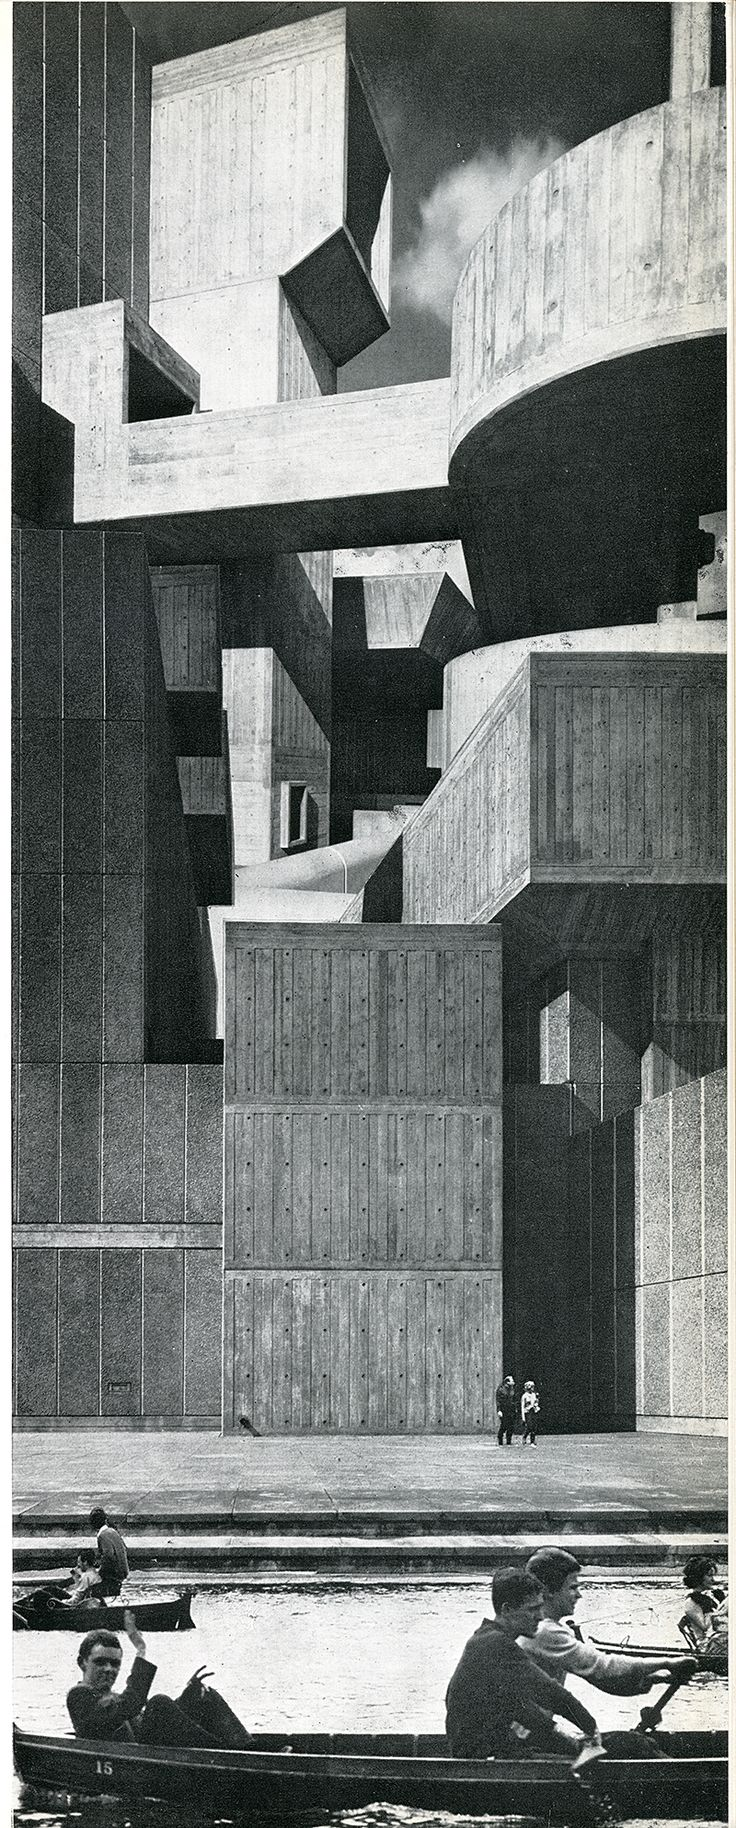 1971-ivor_de_wolfe__kenneth_browne-civilia-architectural_press-london-1971-83-web.jpg (800×1988)